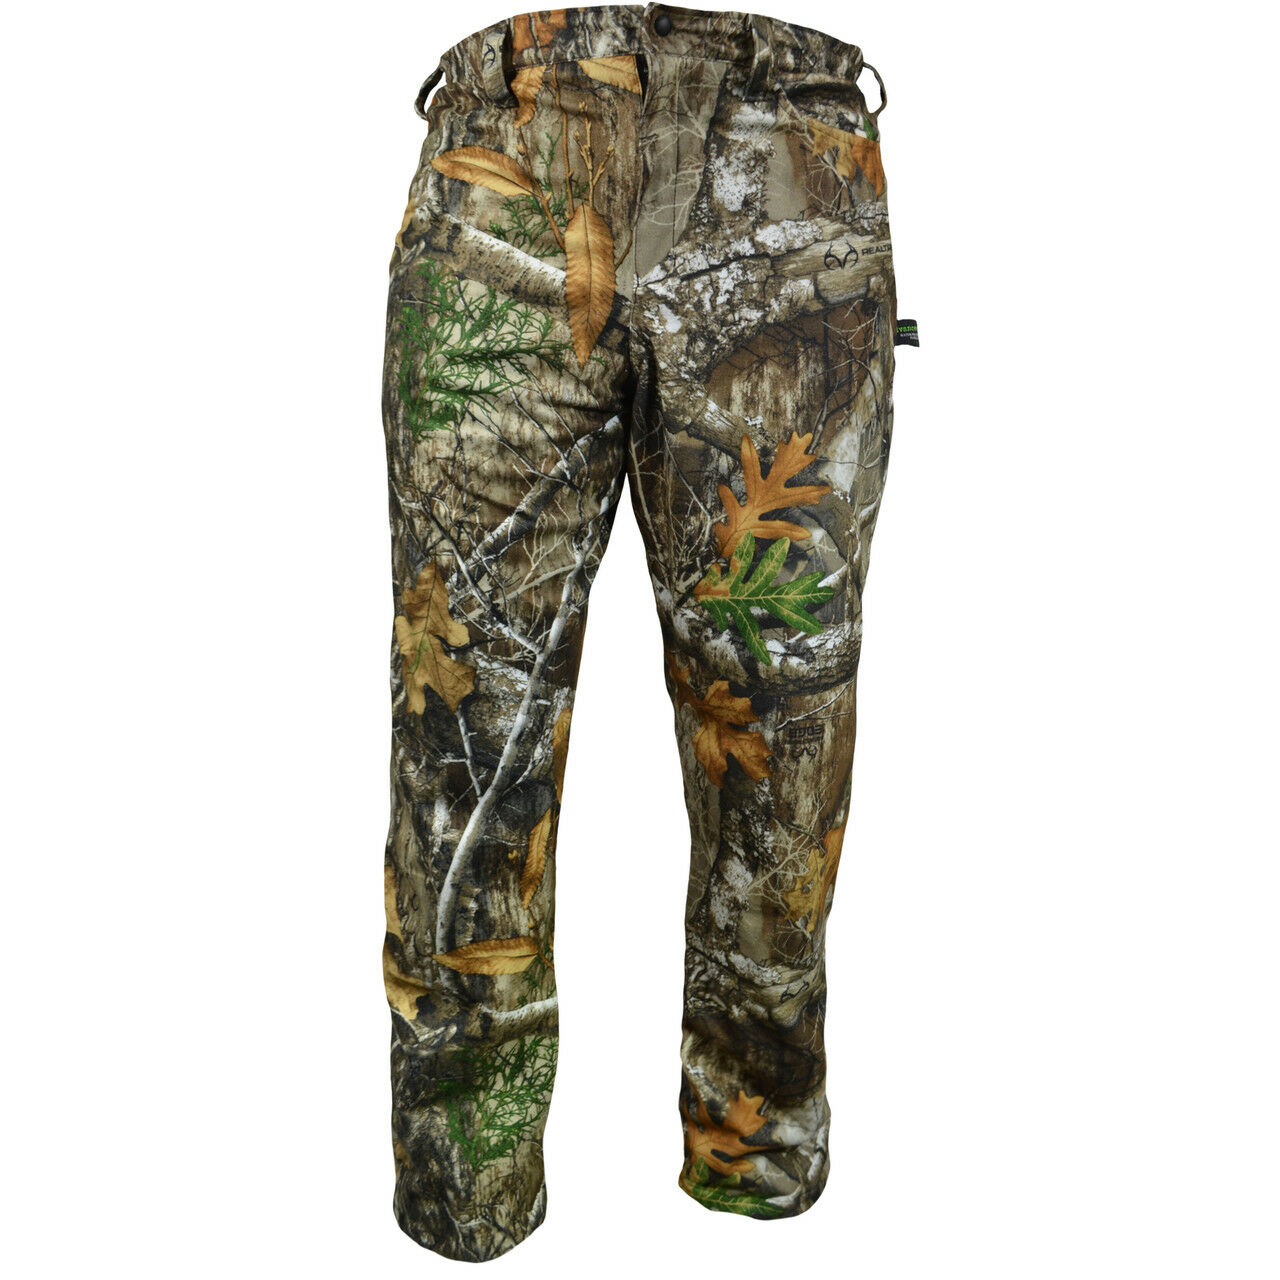 Rivers West Frontier Trousers waterproof and windproof Hunting, Fishing etc